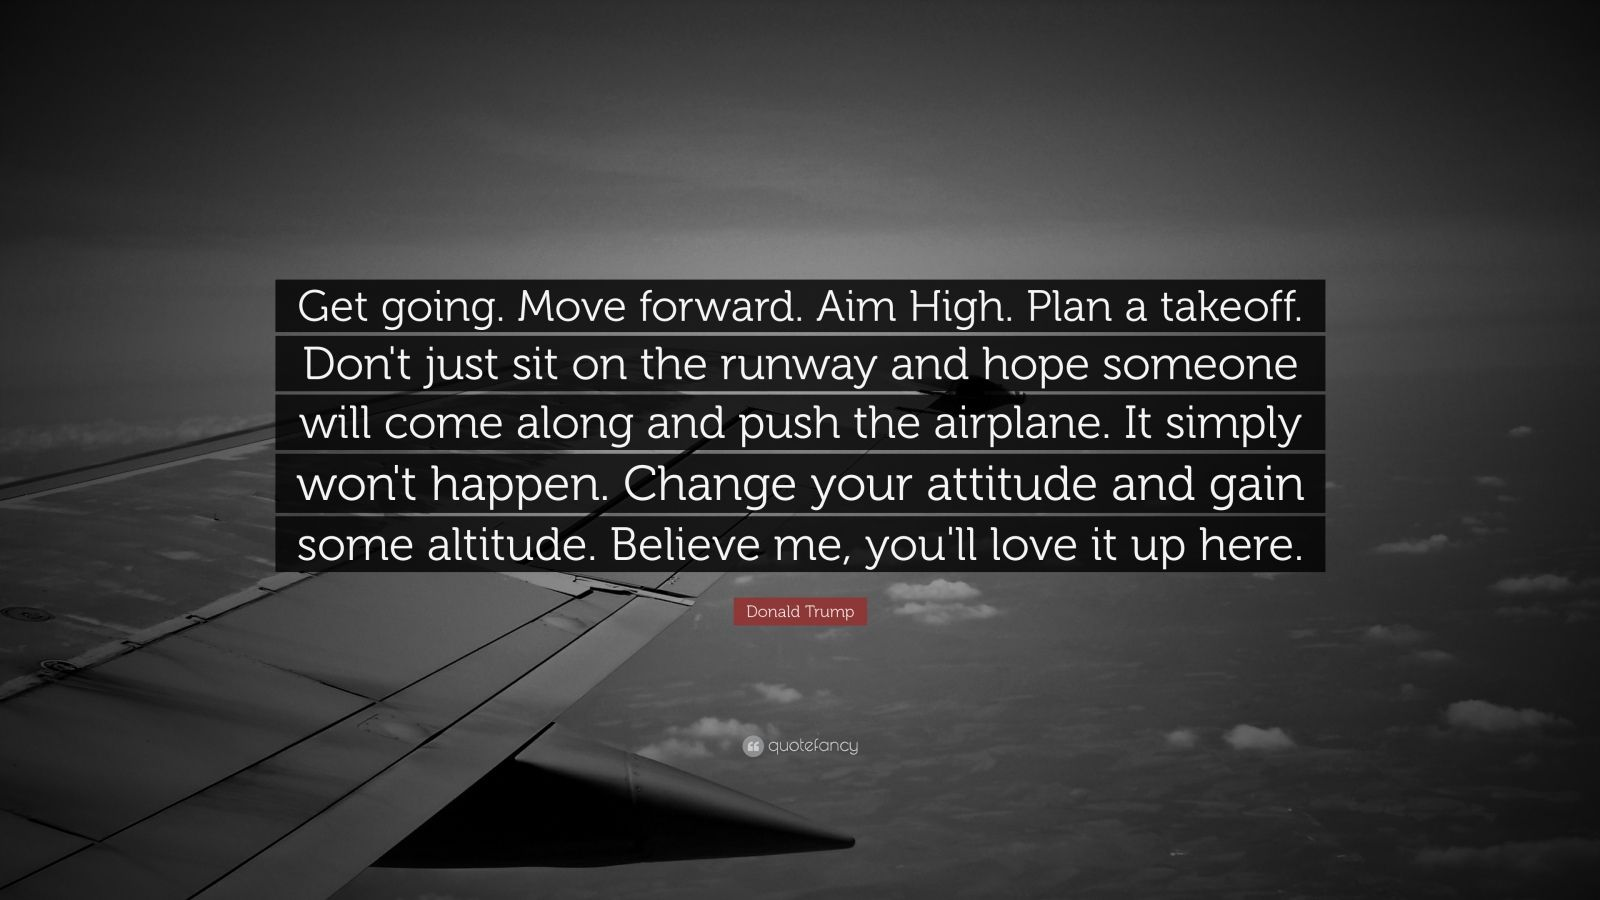 """Donald Trump Quote: """"Get going. Move forward. Aim High. Plan a takeoff. Don't just sit on the runway and hope someone will come along and push the airplane. It simply won't happen. Change your attitude and gain some altitude. Believe me, you'll love it up here."""""""